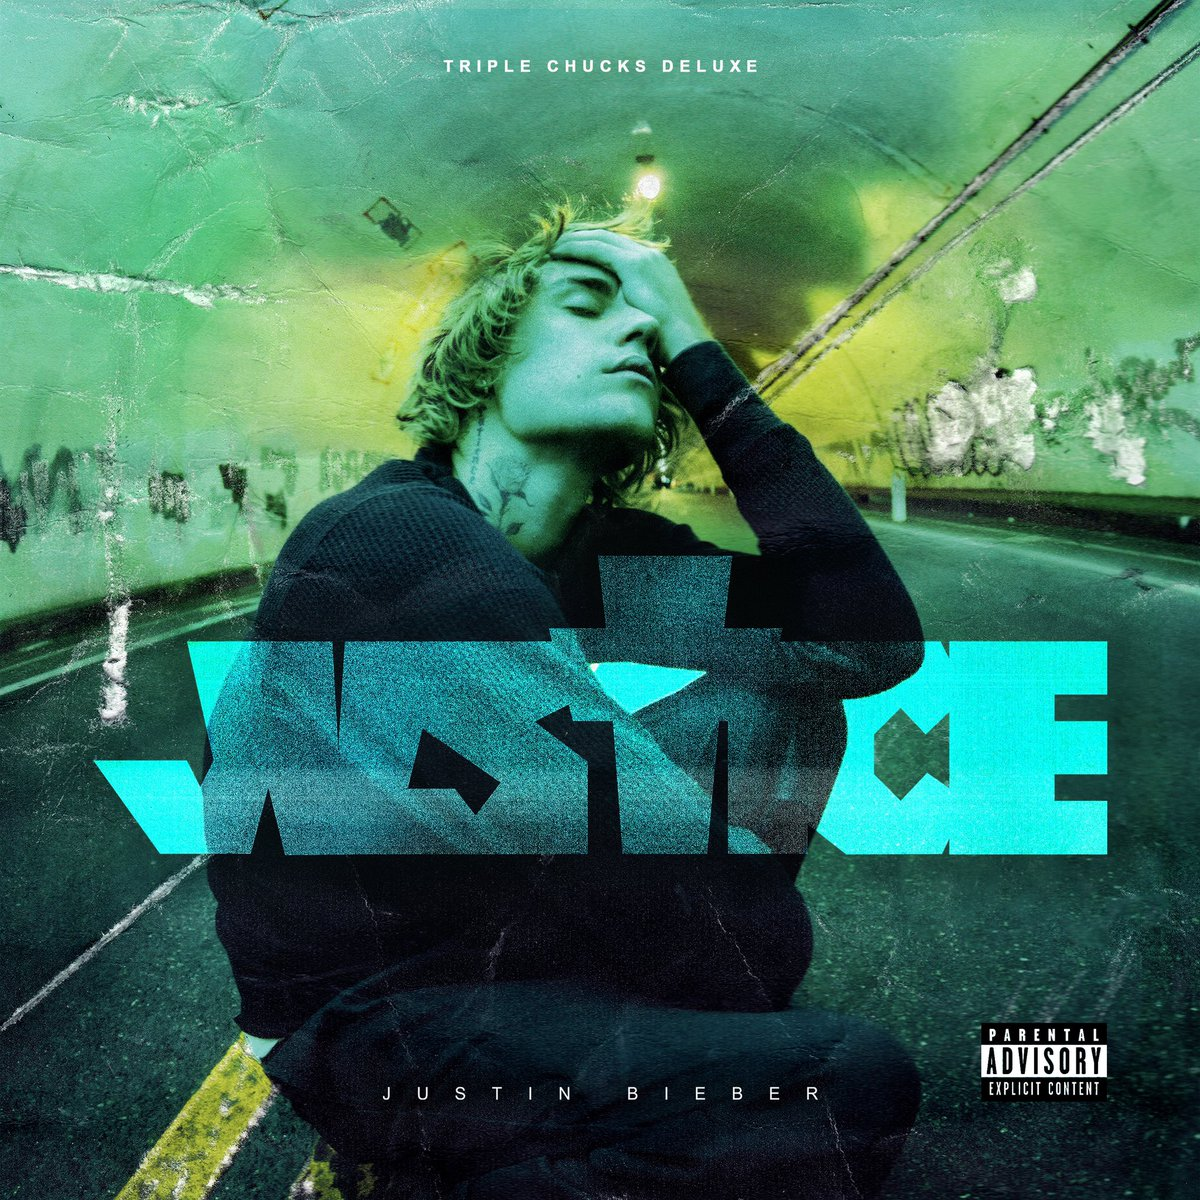 Justice triple chucks deluxe out now @LilUziVert @Jaden @QuavoStuntin @DaBabyDaBaby @ToriKelly